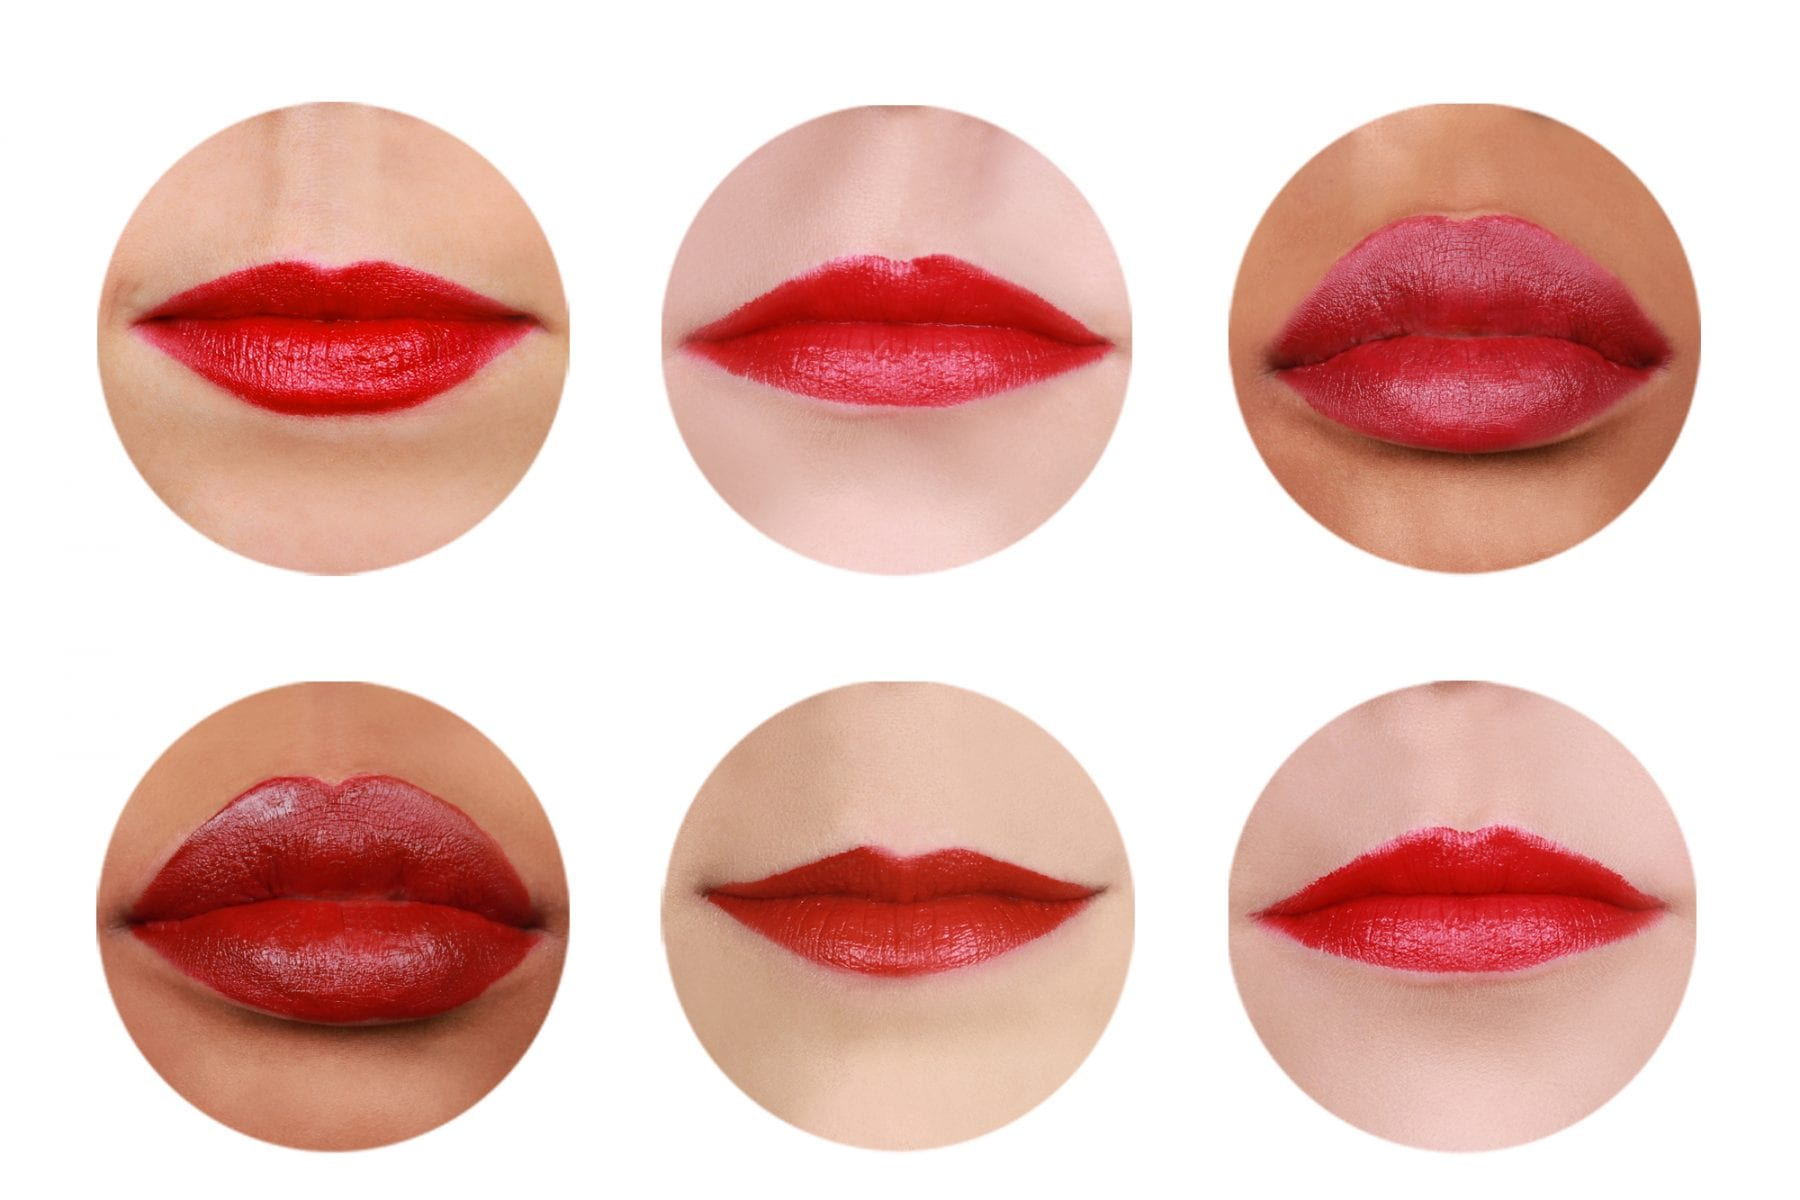 The Best Red Lipstick For Your Skin Tone